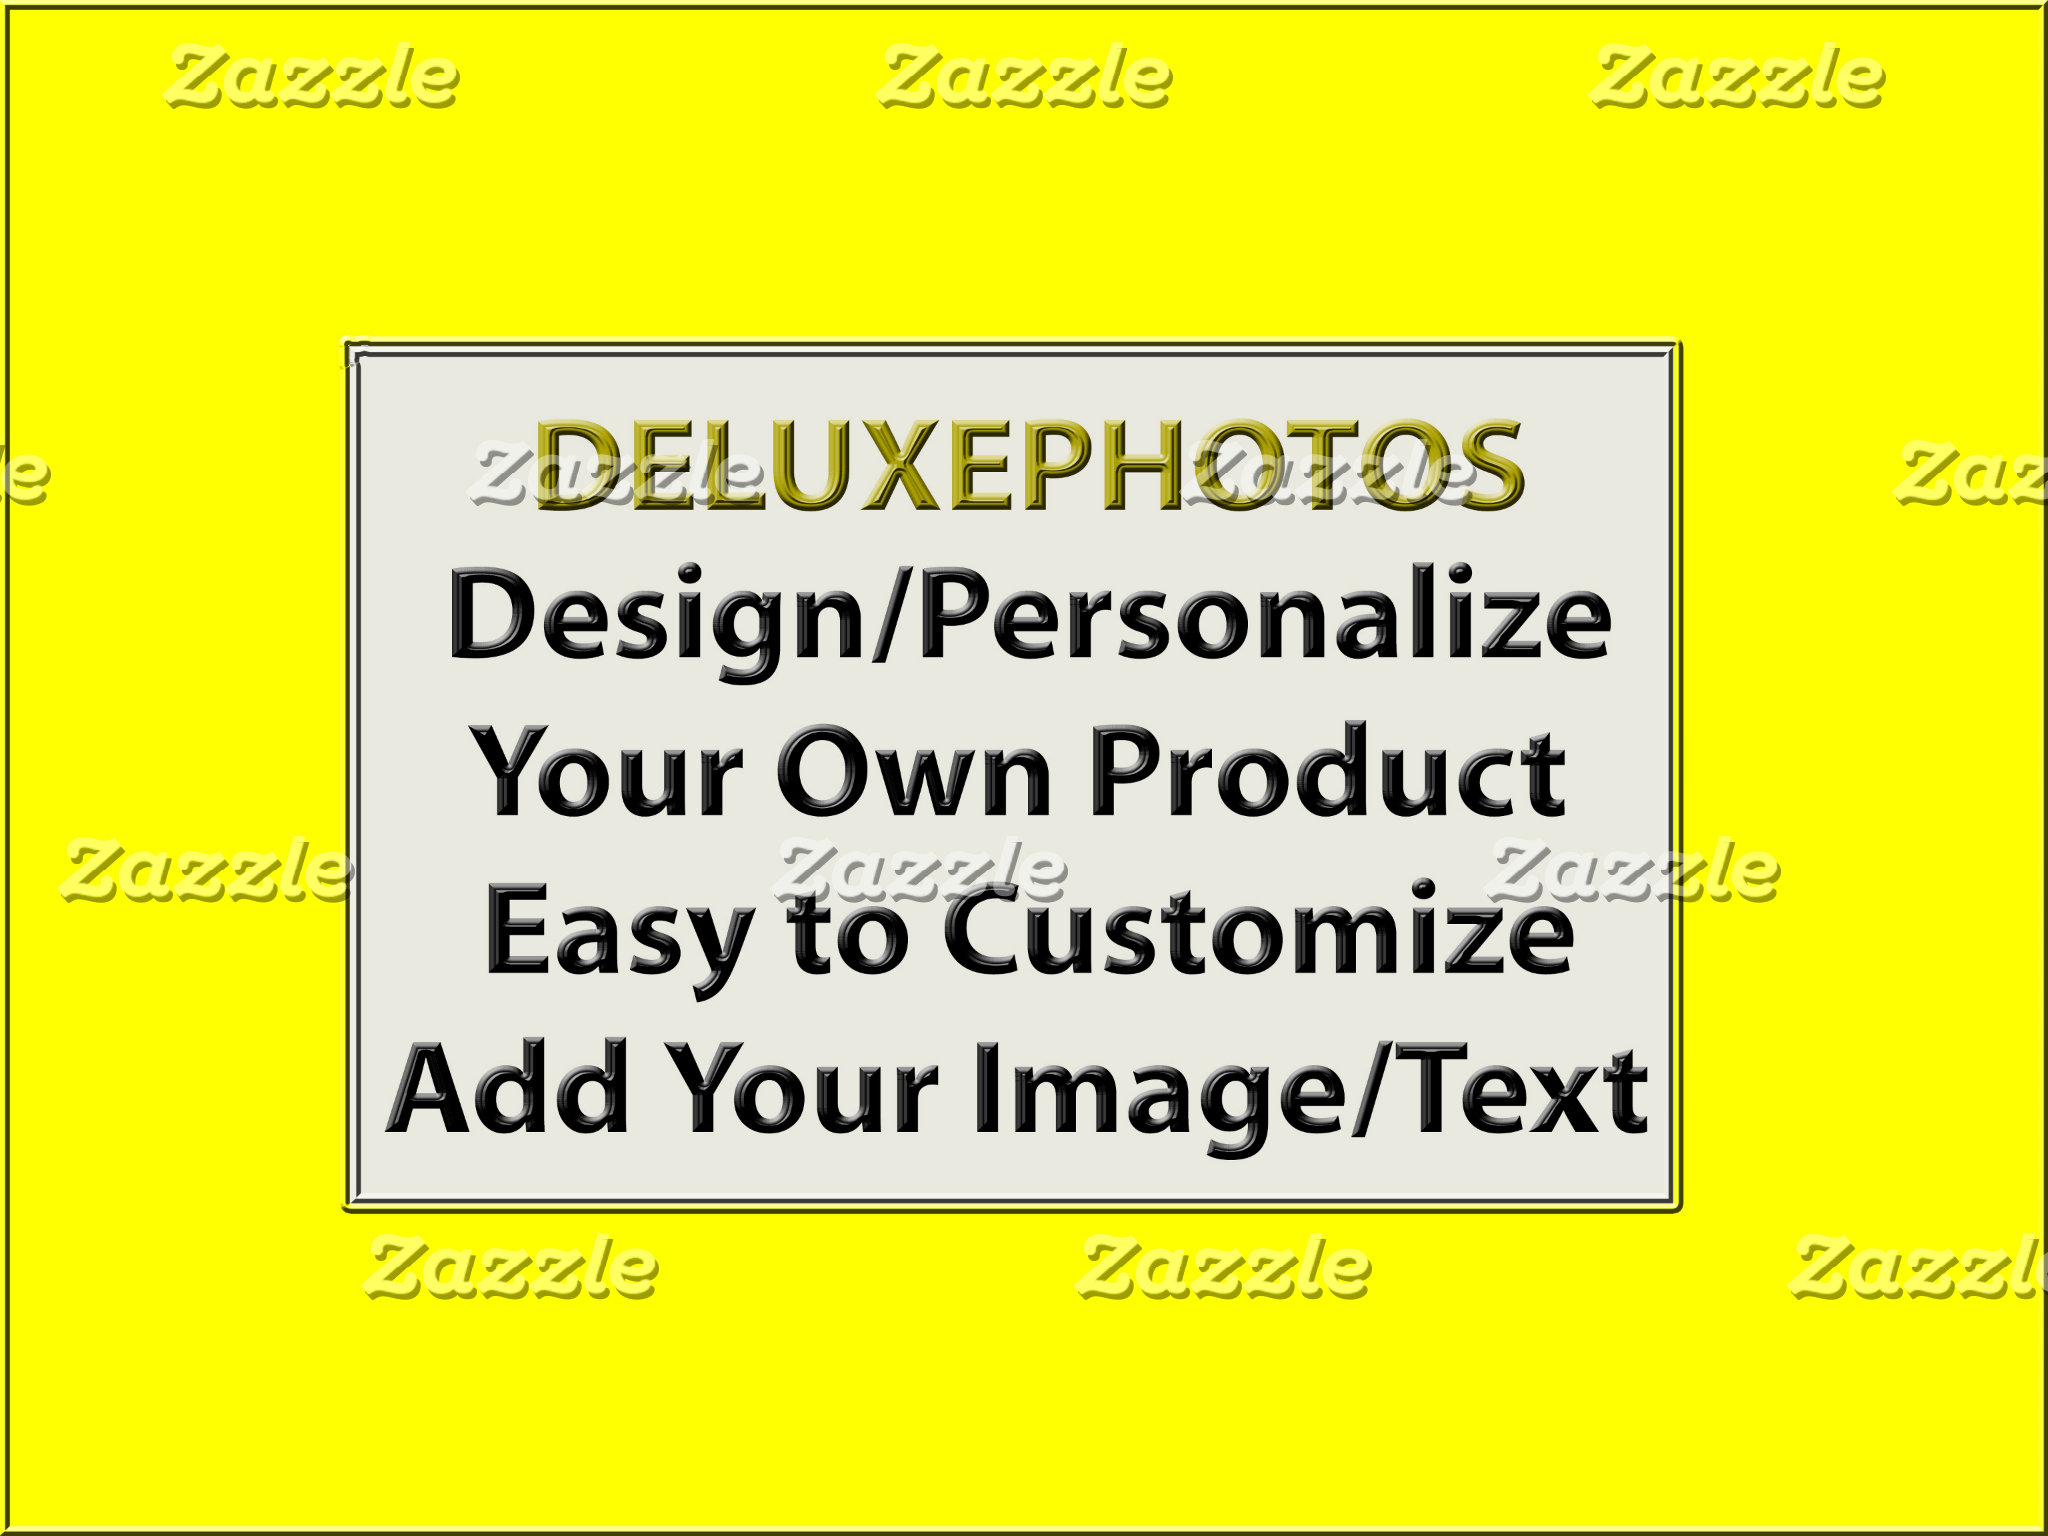 Personalize Your Own